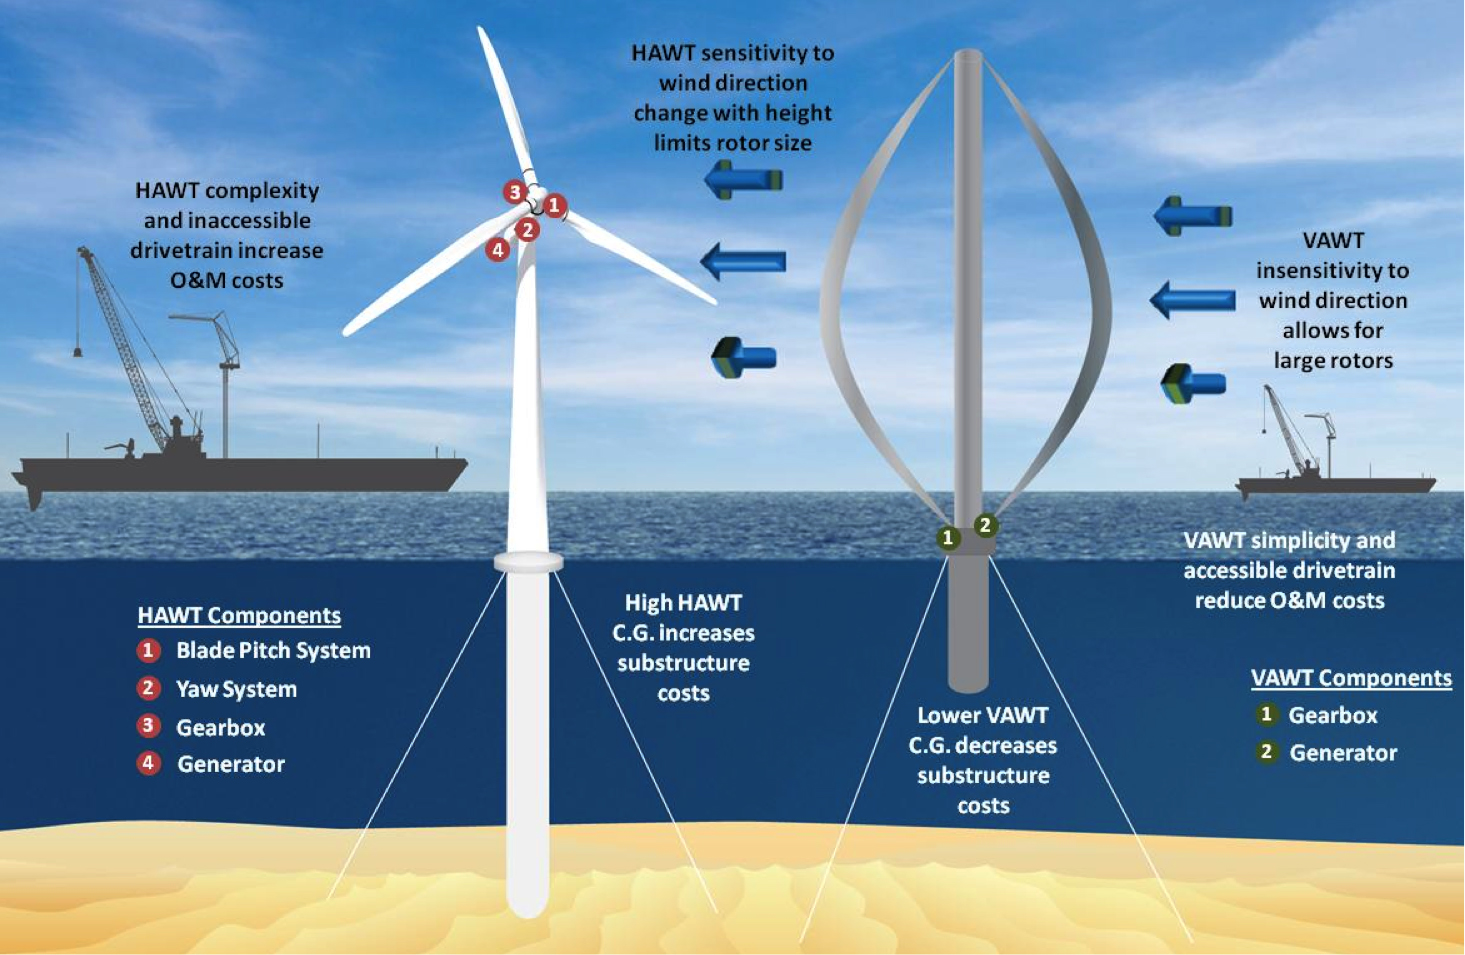 VAWTs in deep-water have inherent advantages over HAWTs in deep-water, which is illustrated in the figure. This project aims to capitalize on these advantages for offshore wind cost reductions while addressing the key technical, design, and manufacturing challenges for VAWTs.